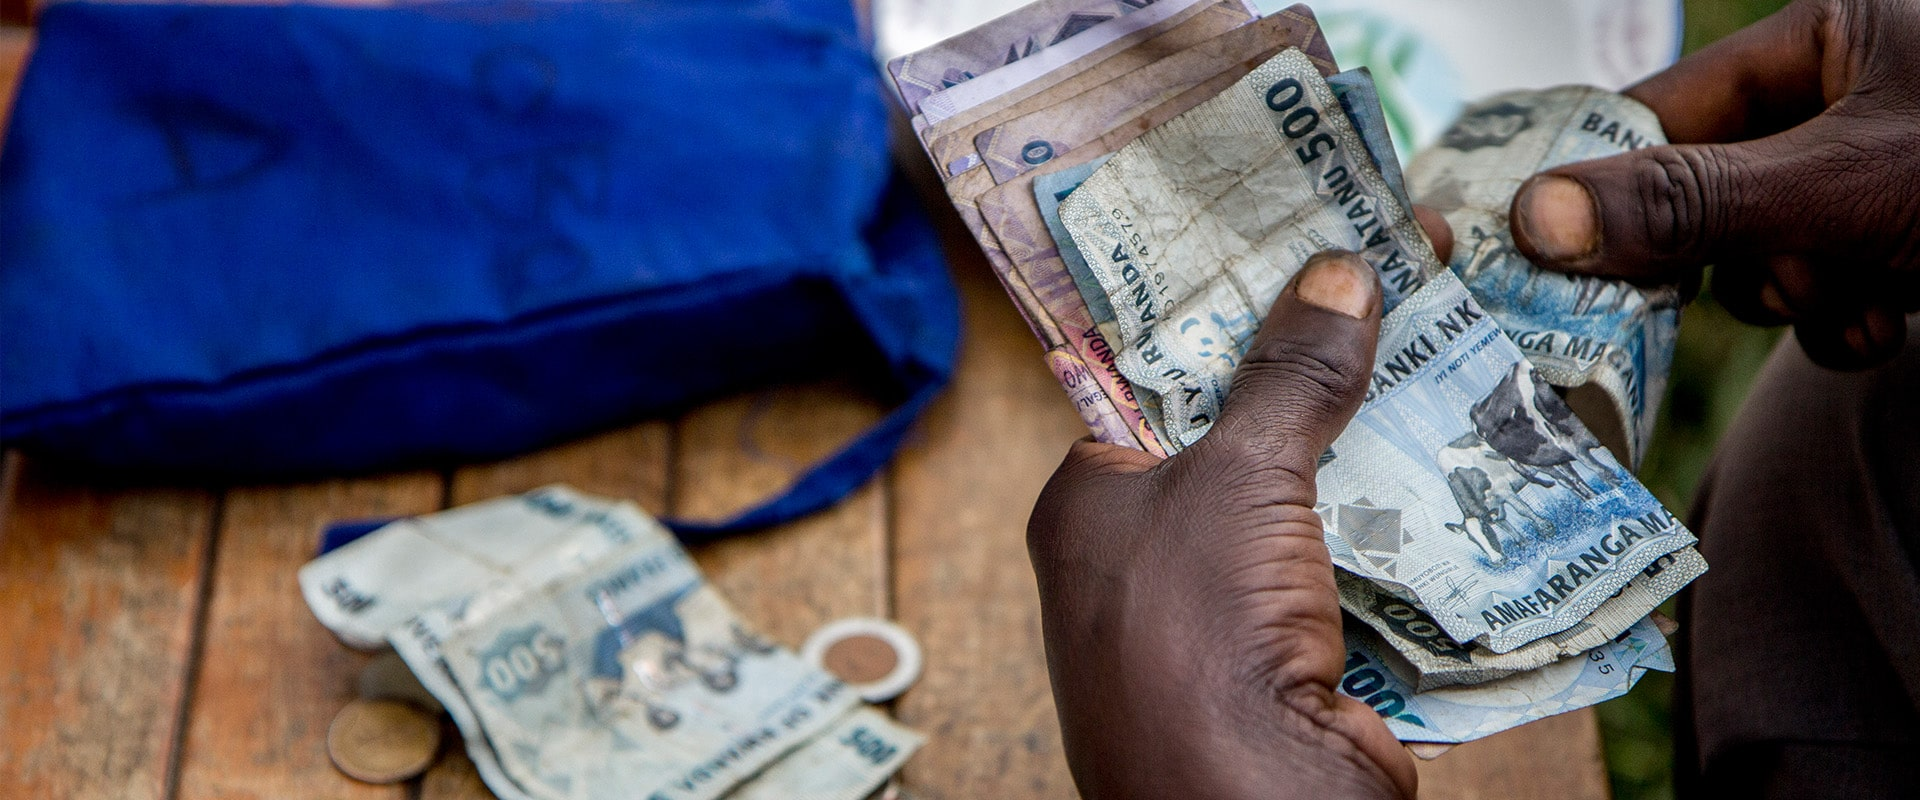 The Rwandan Small and Micro Enterprise – Reflections on financial data during the Covid-19 Pandemic